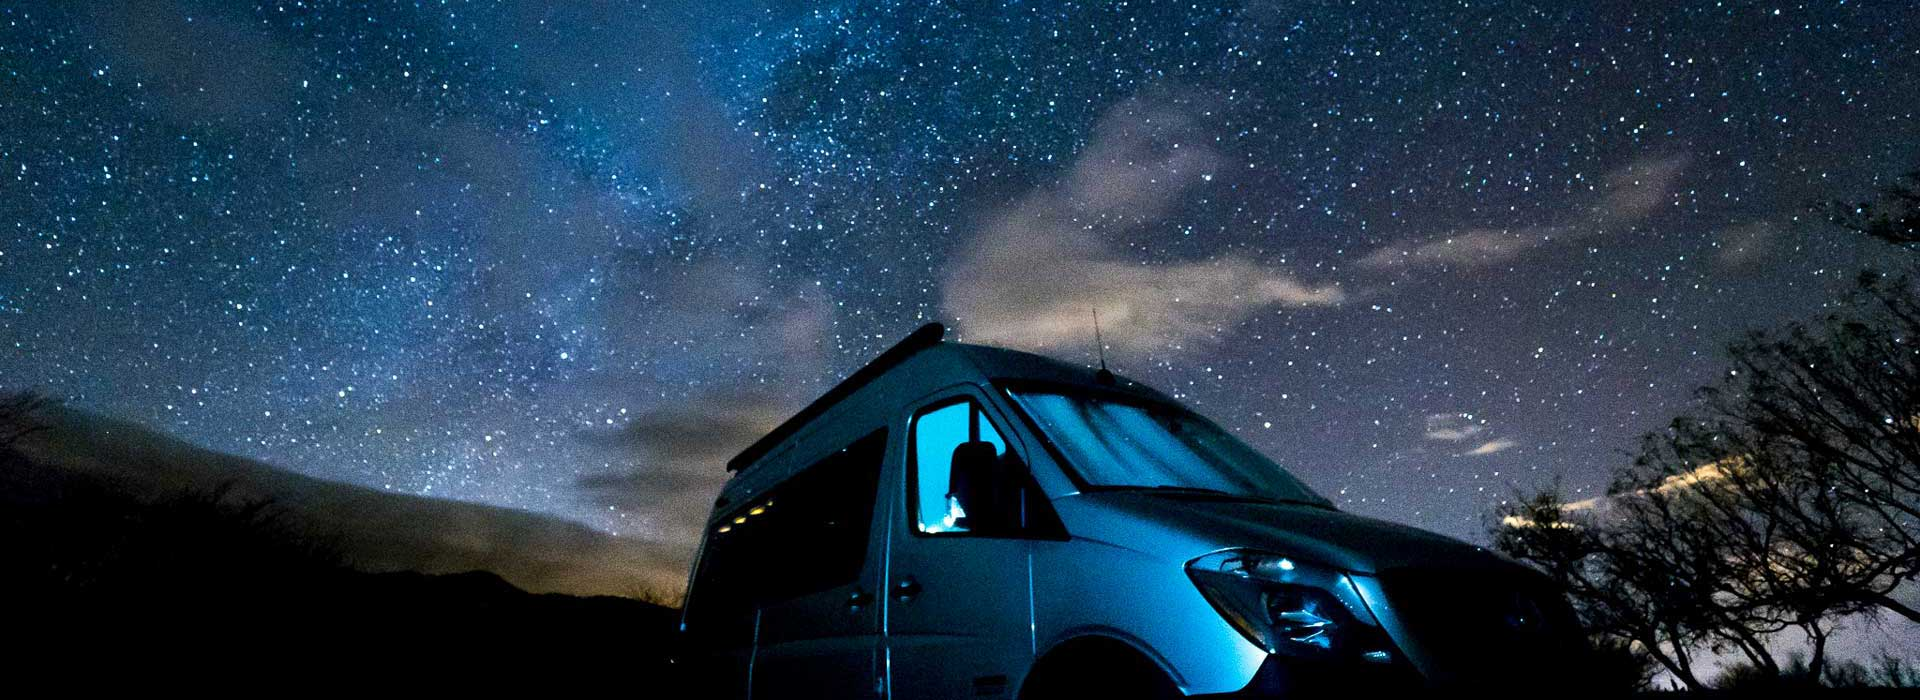 Sportsmobile Sprinter van conversion camping under the night sky.